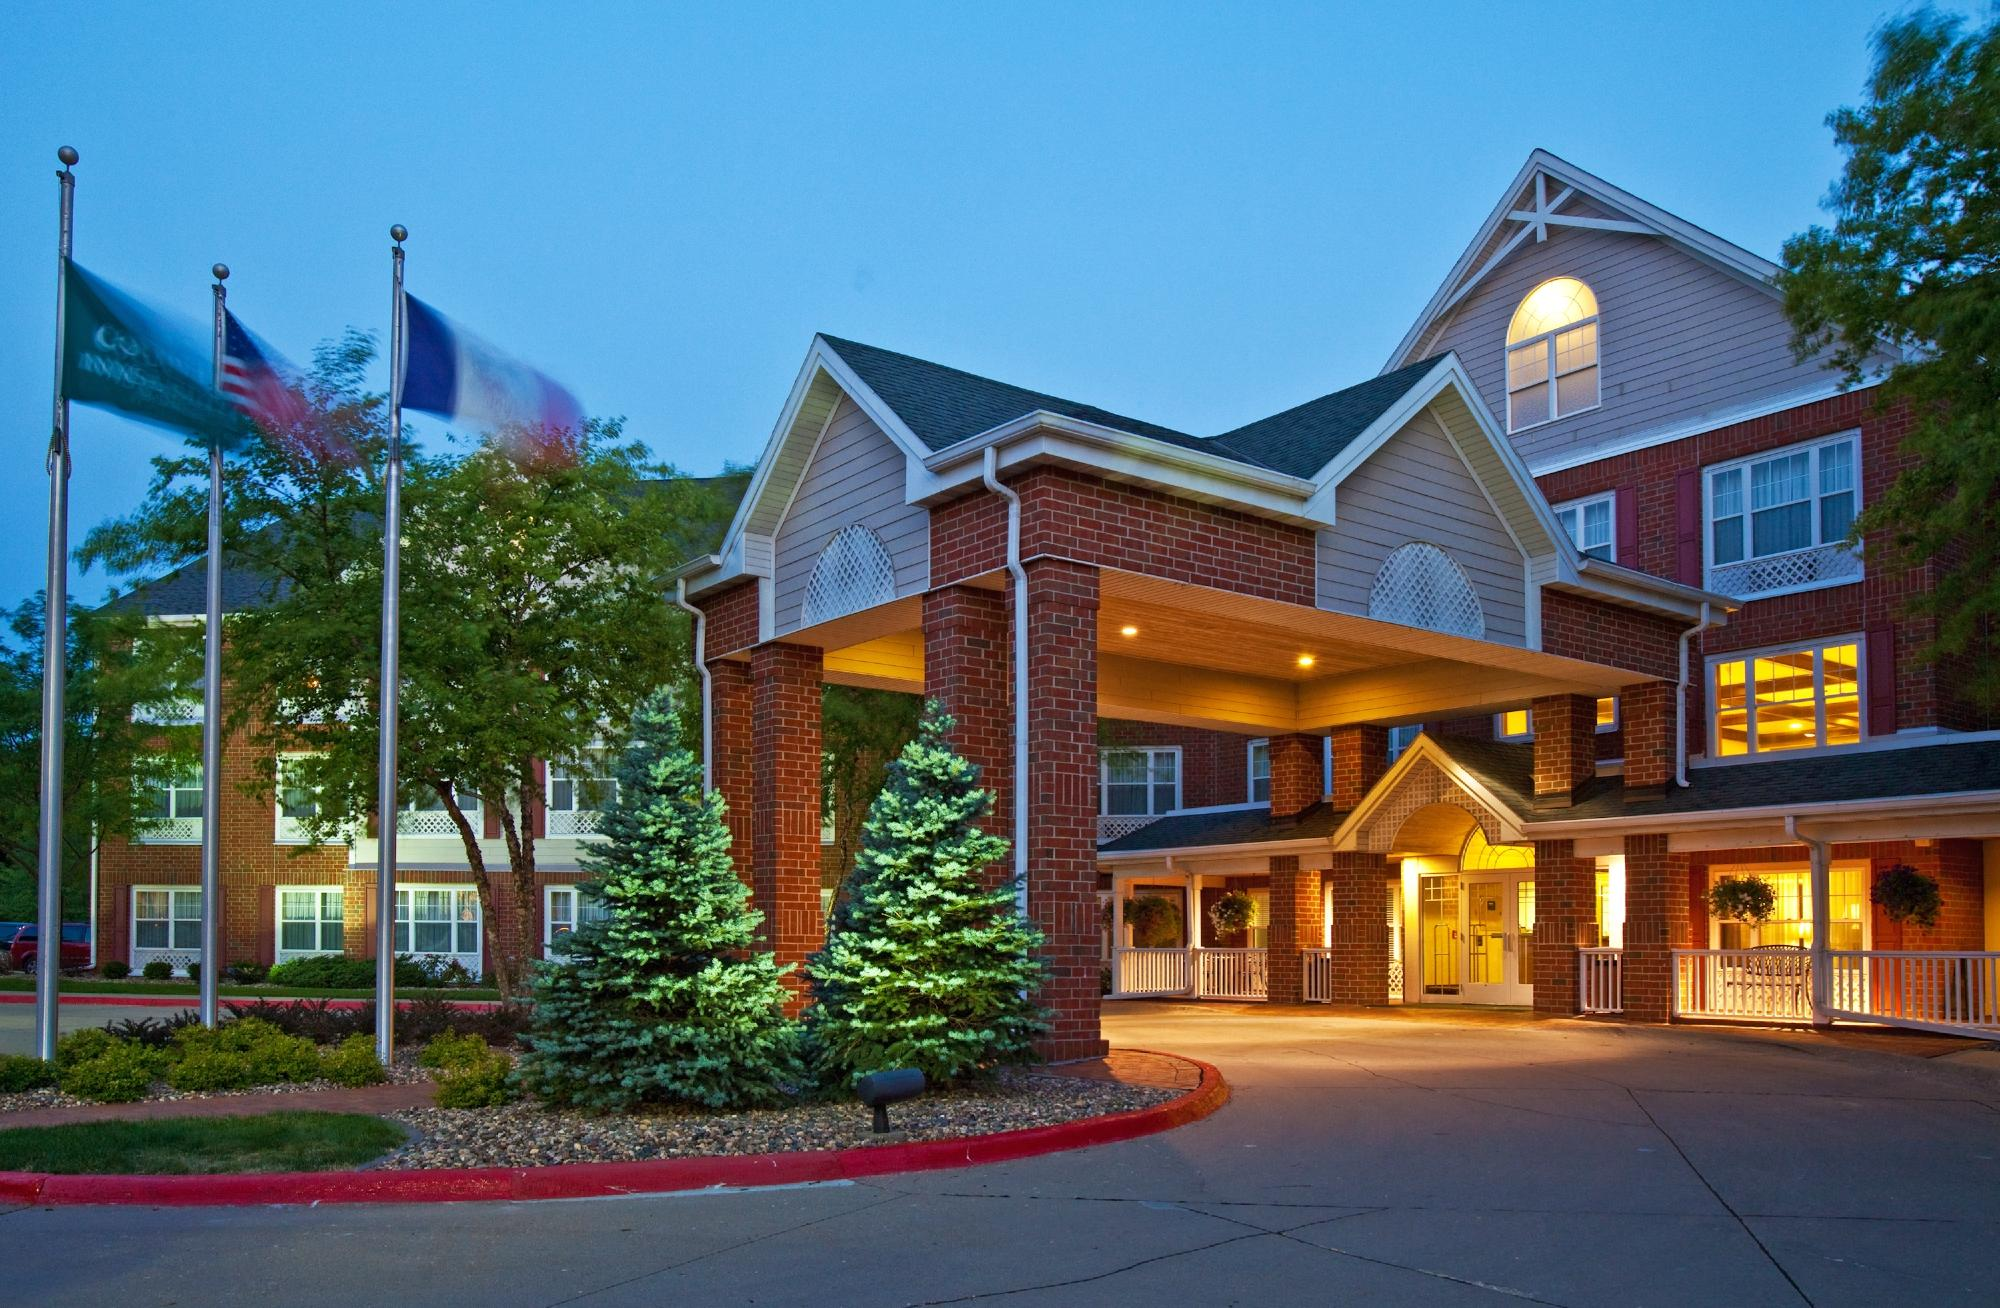 Country Inn & Suites By Carlson, Des Moines West